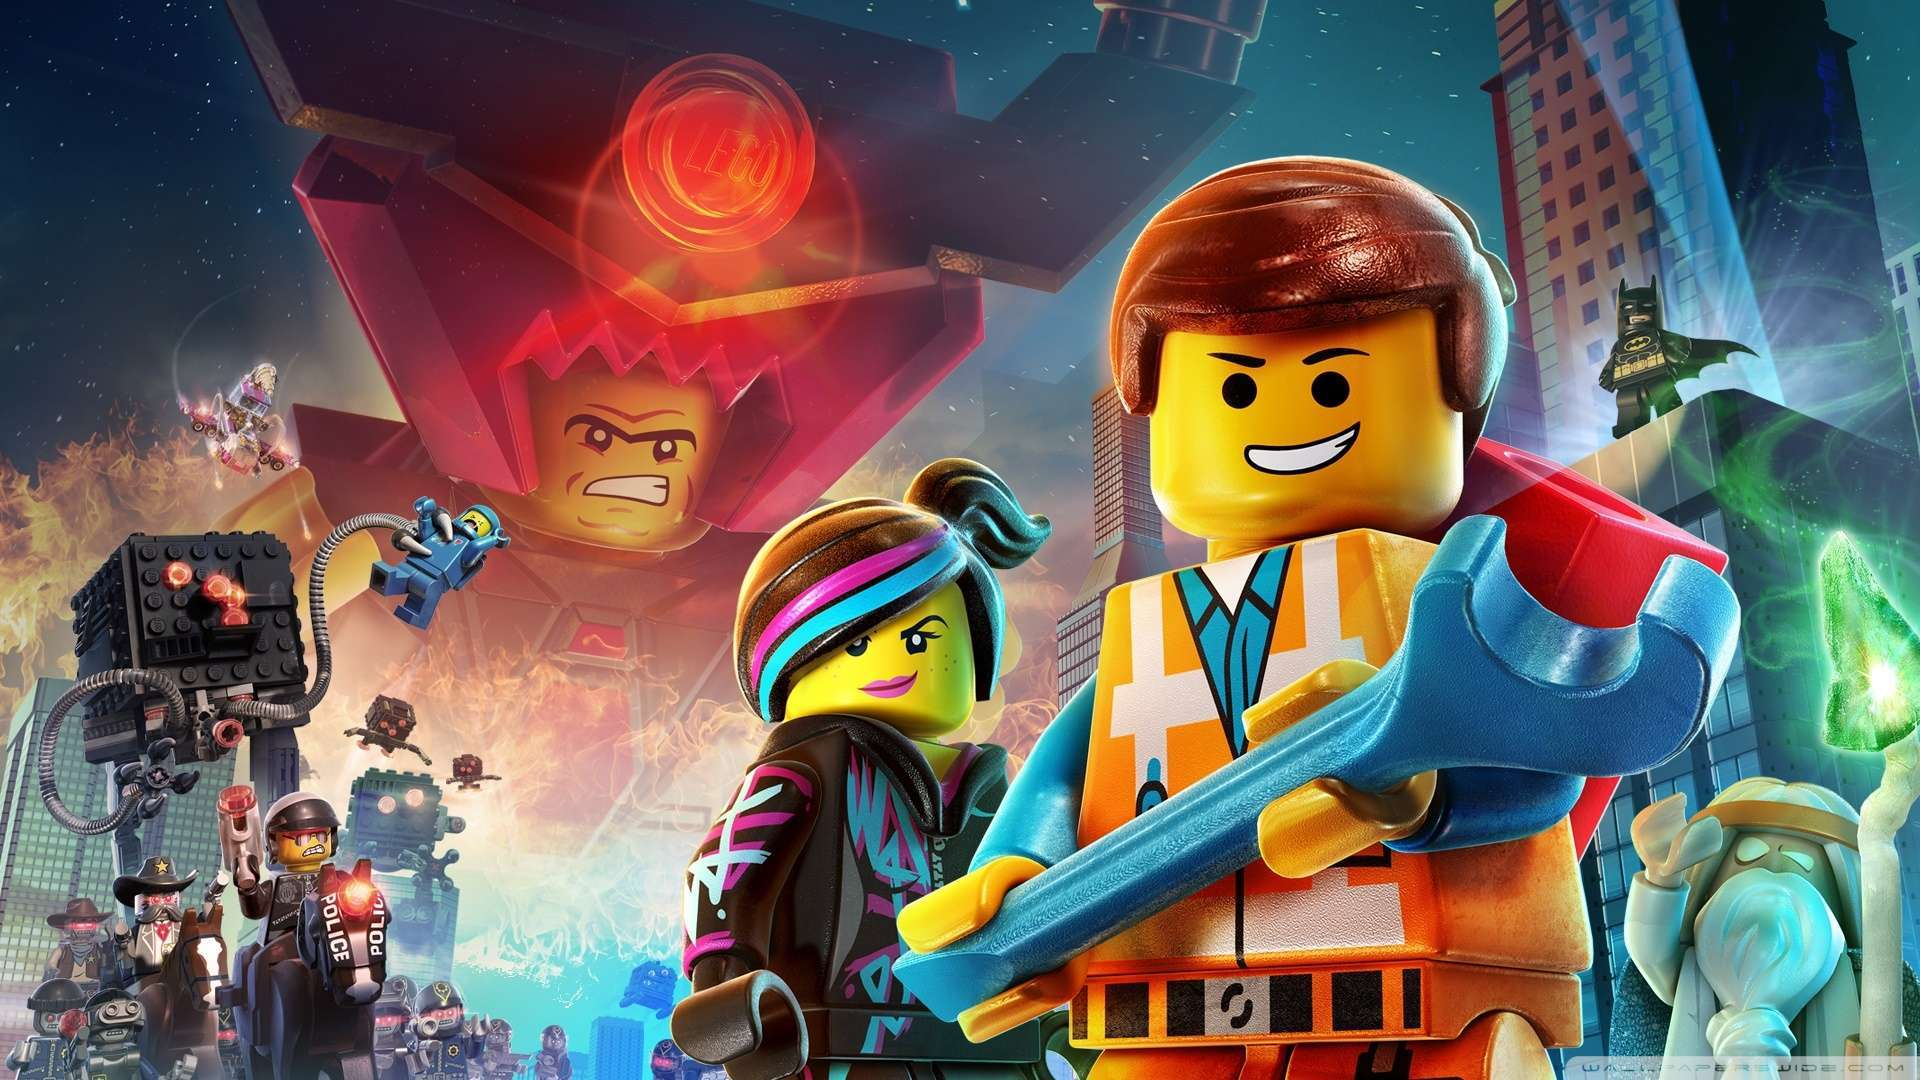 Wallpaper The Lego Movie 2015 Wallpaper 1080p HD Upload at February 1920x1080